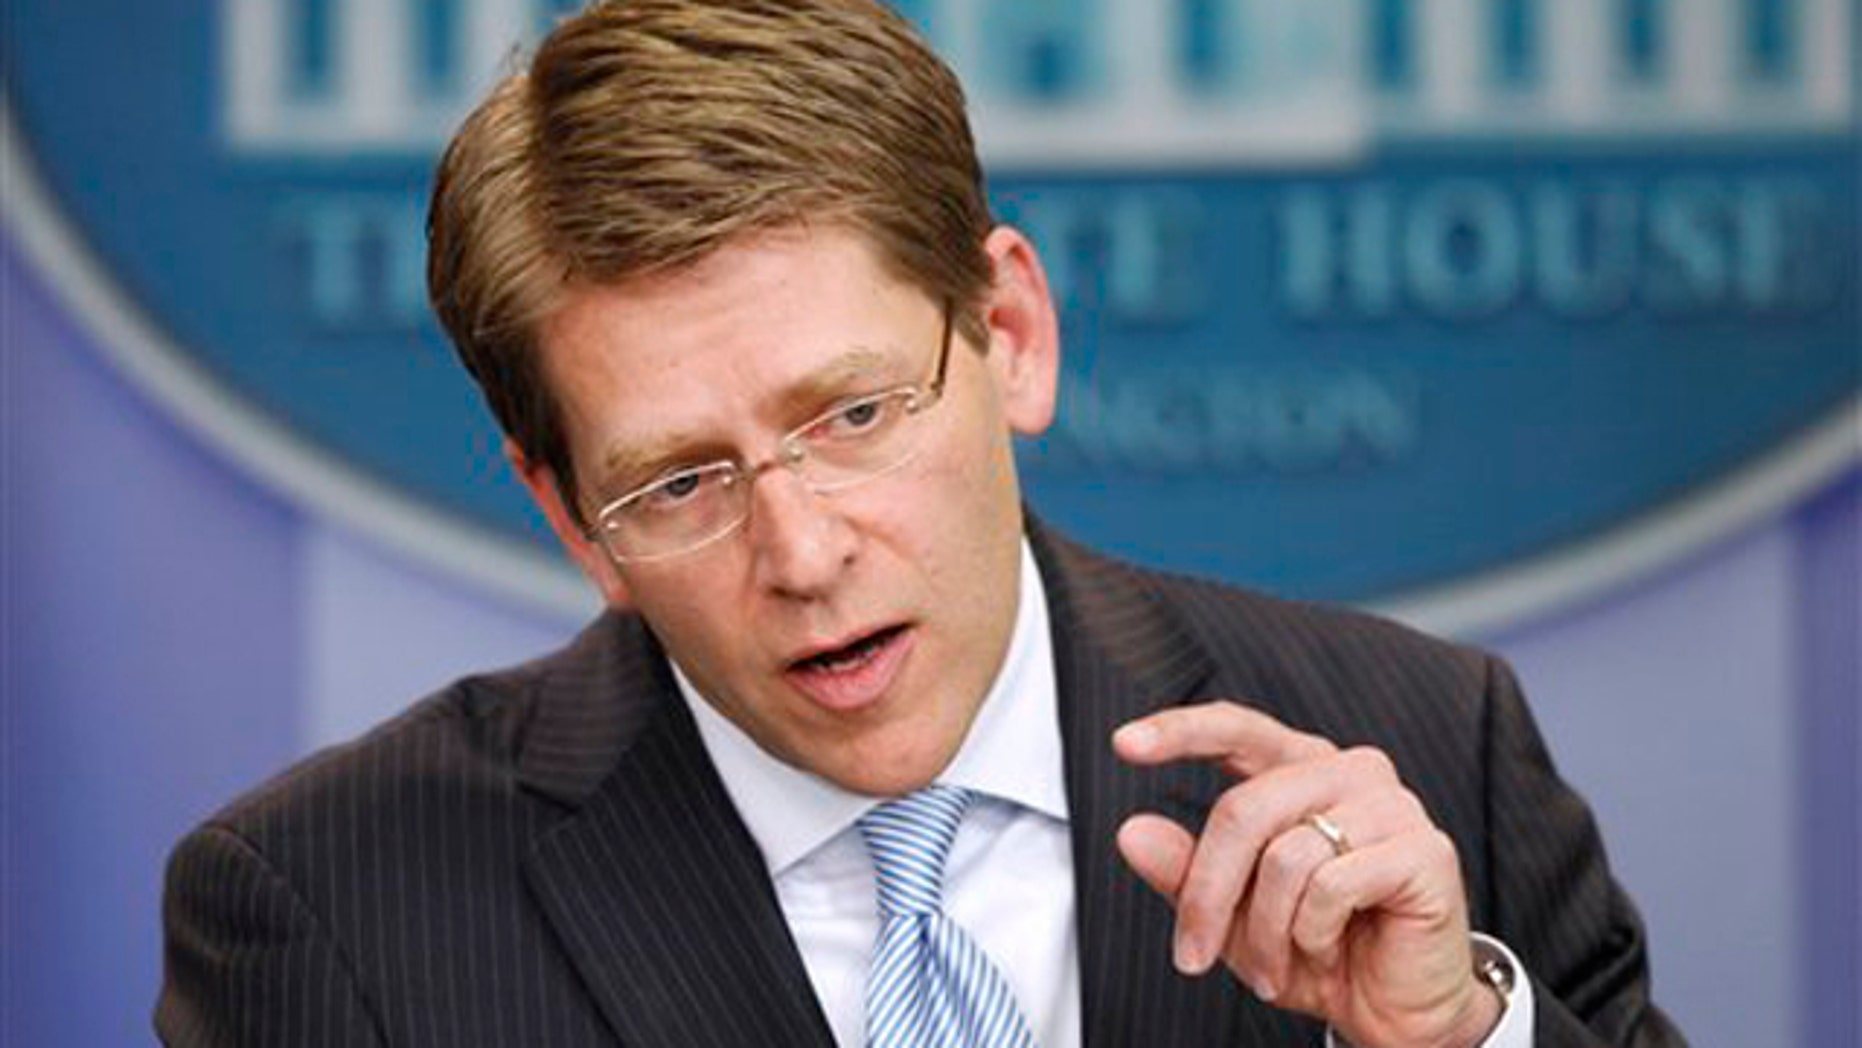 White House Press Secretary Jay Carney speaks May 4 during the daily briefing at the White House in Washington.